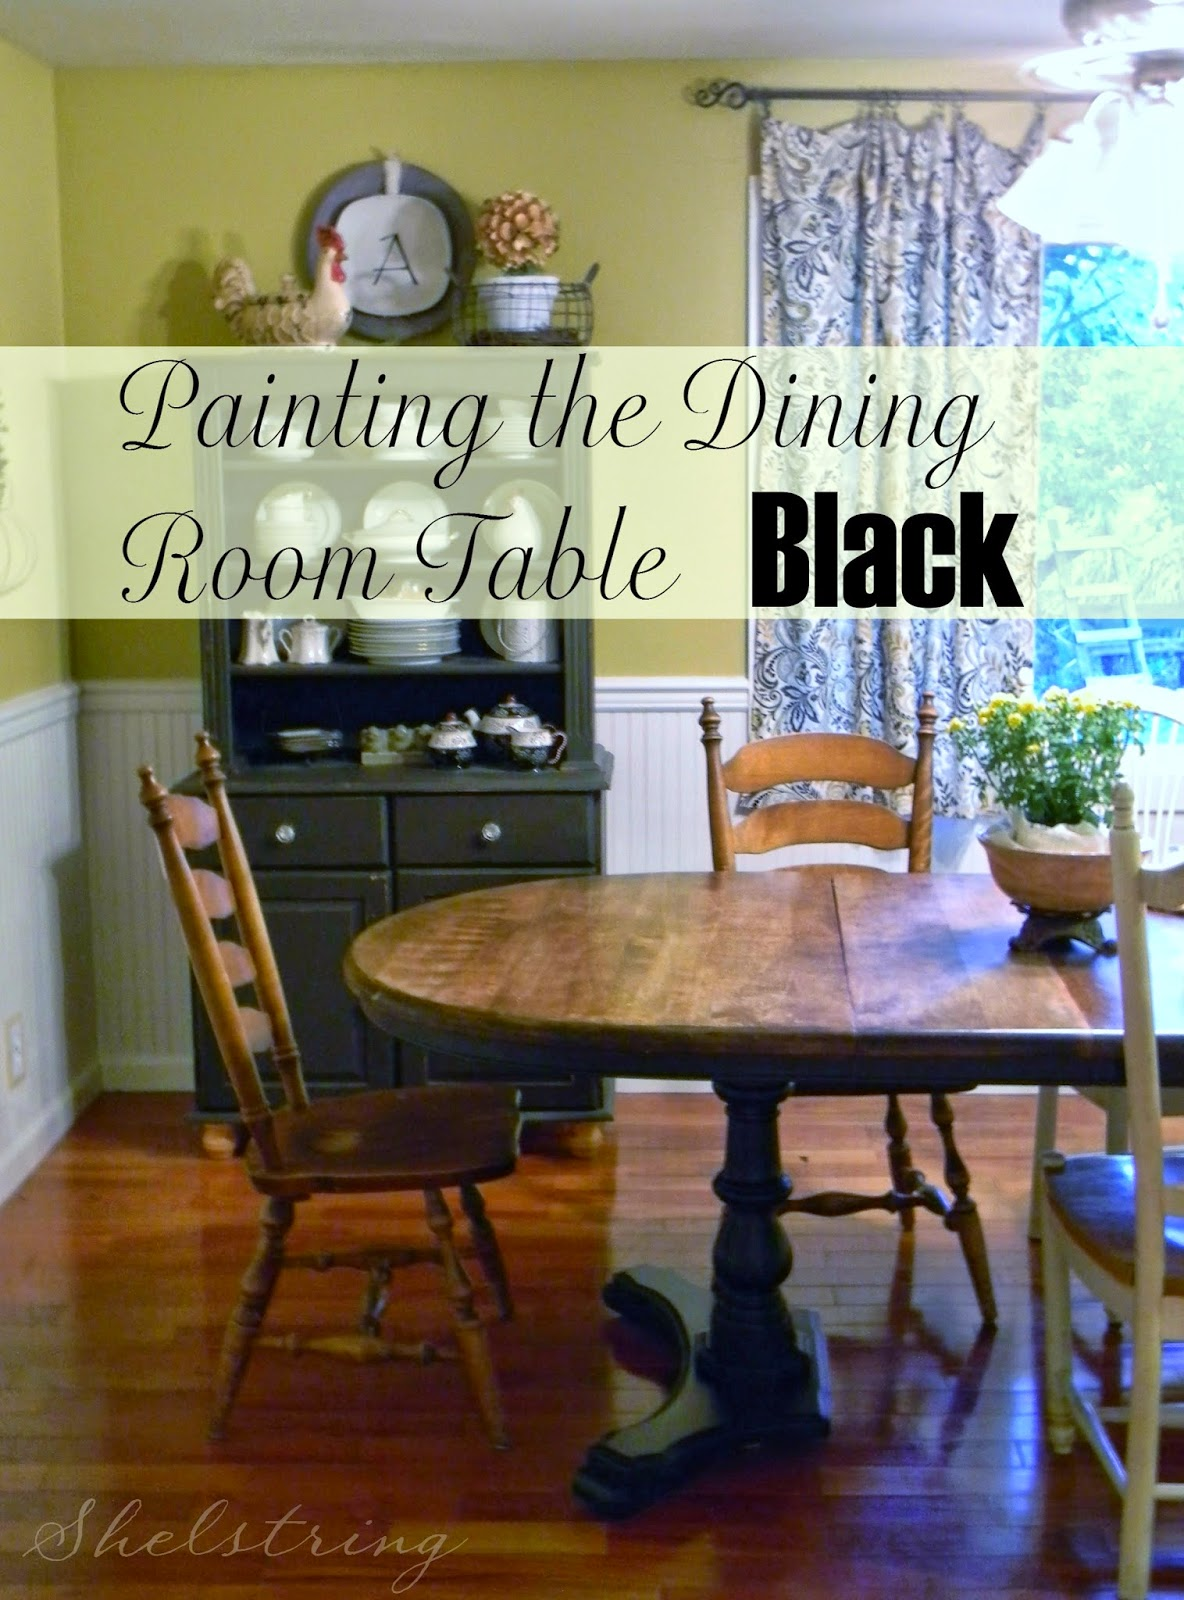 shelstring blog painting the dining room table. Black Bedroom Furniture Sets. Home Design Ideas